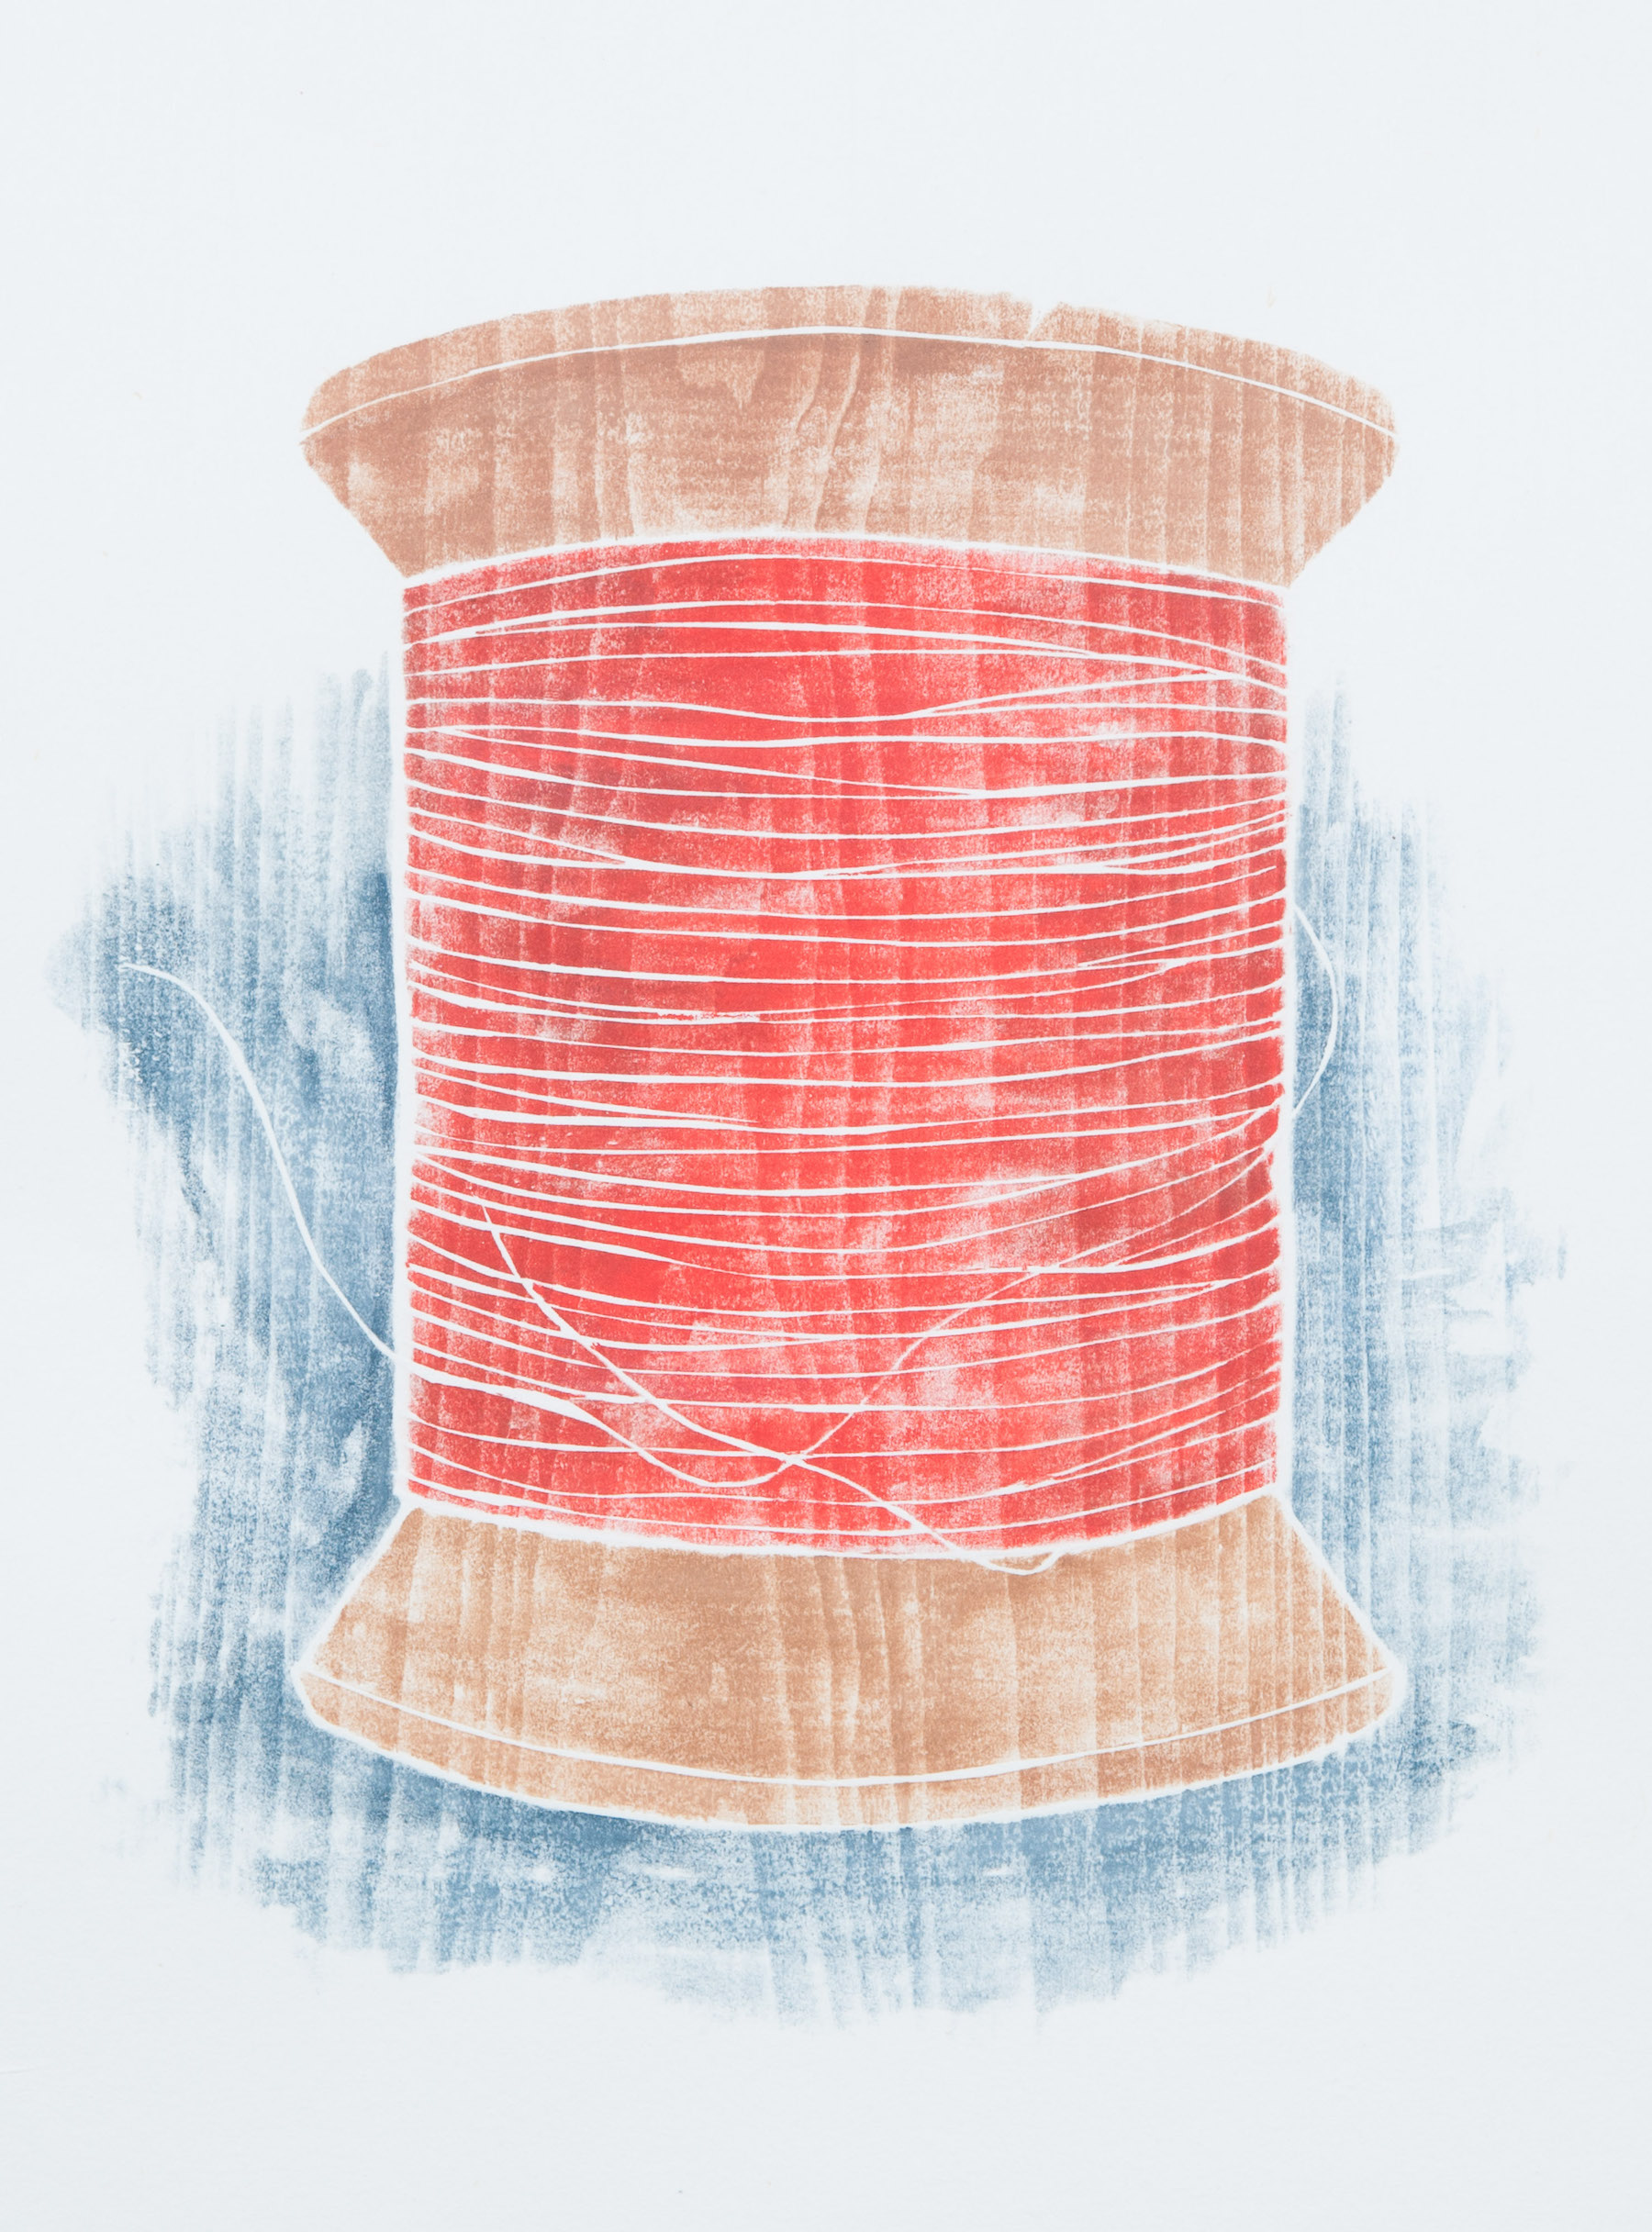 """""""Old Spool"""" (red), white line woodcut, 10"""" x 9"""", $350 (framed)"""